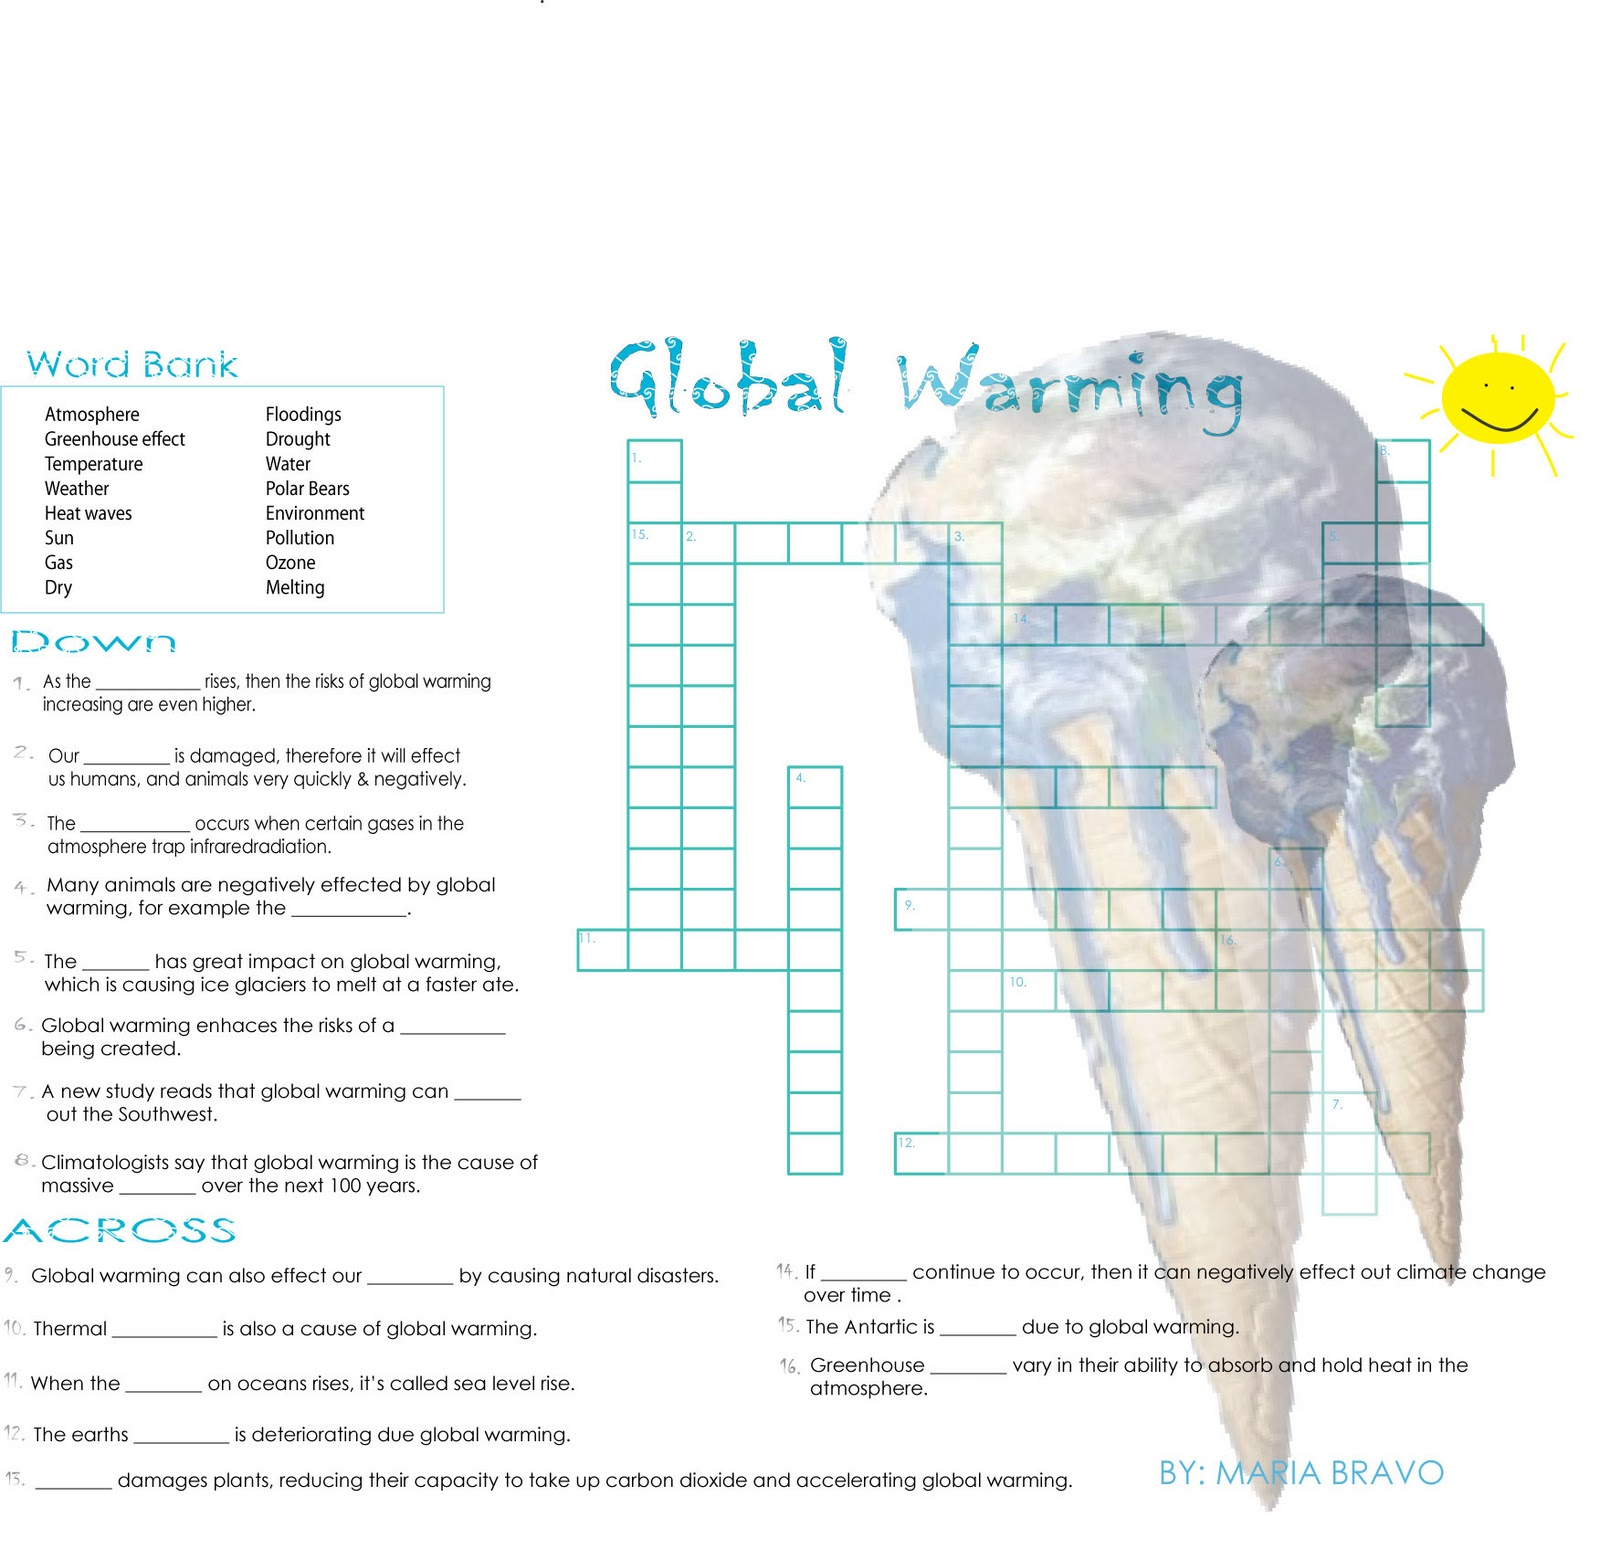 negative effects of global warming